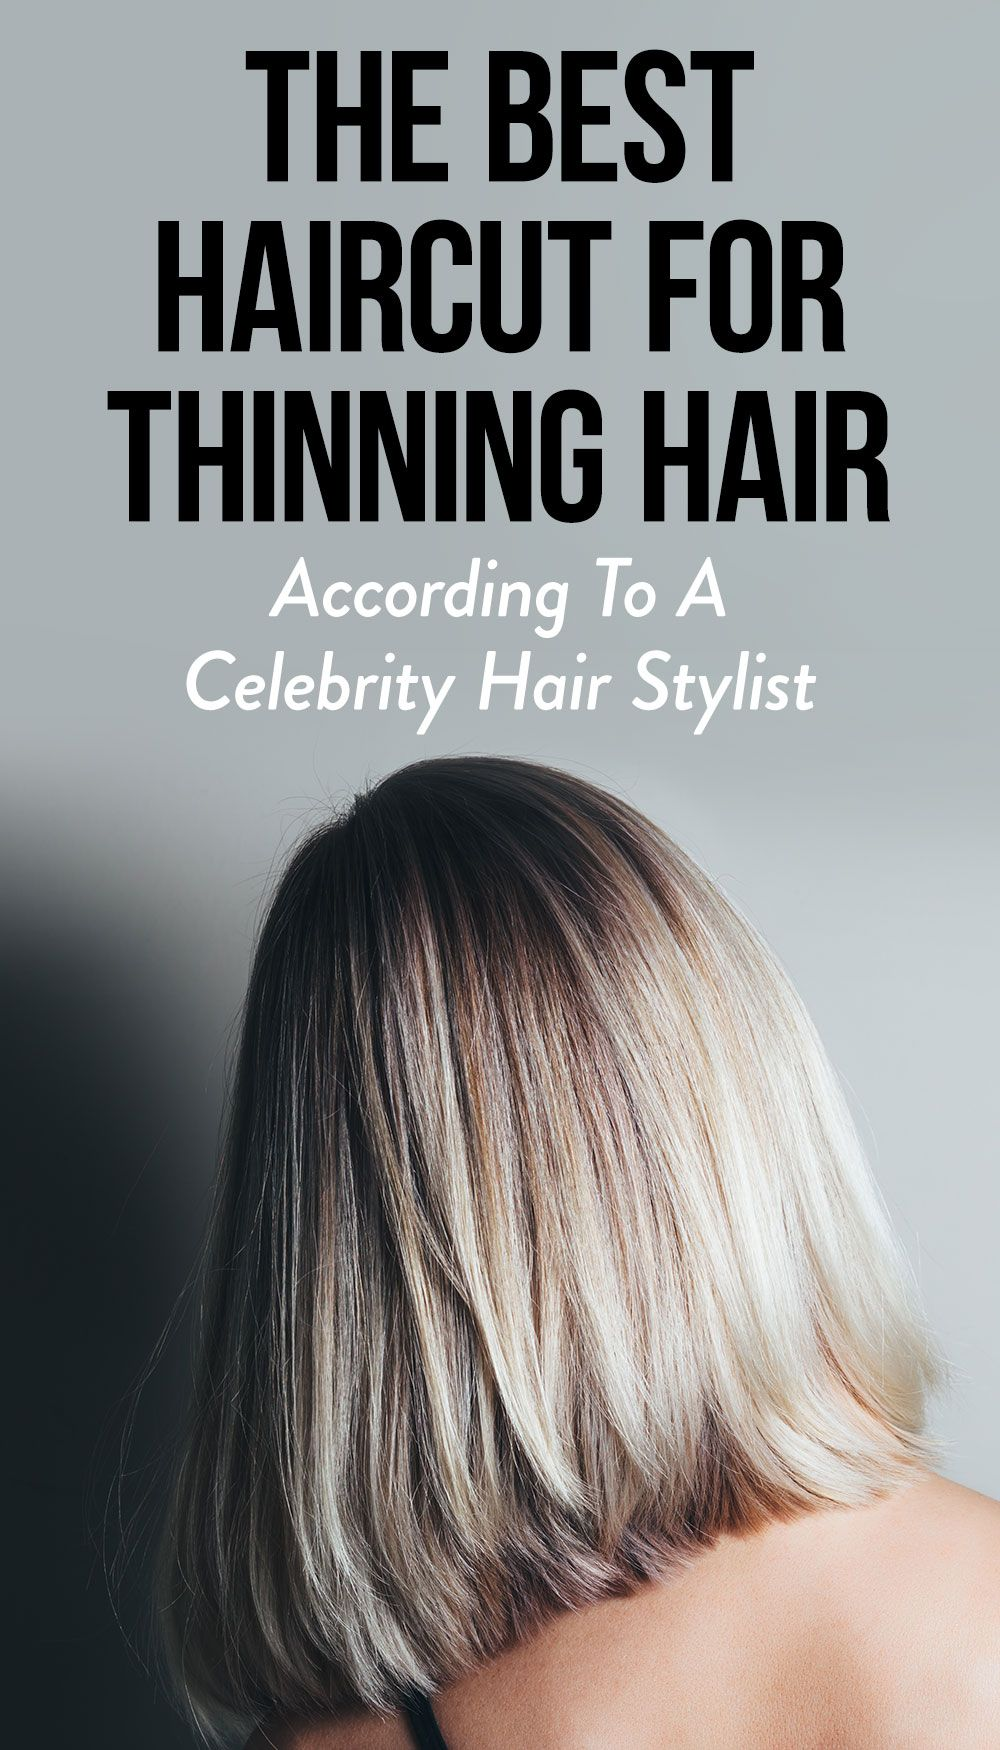 This Is The Best Haircut For Thinning Hair According To A Celebrity Hair Stylist In 2020 Thin Hair Haircuts Thin Hair Styles For Women Hairstyles For Thin Hair